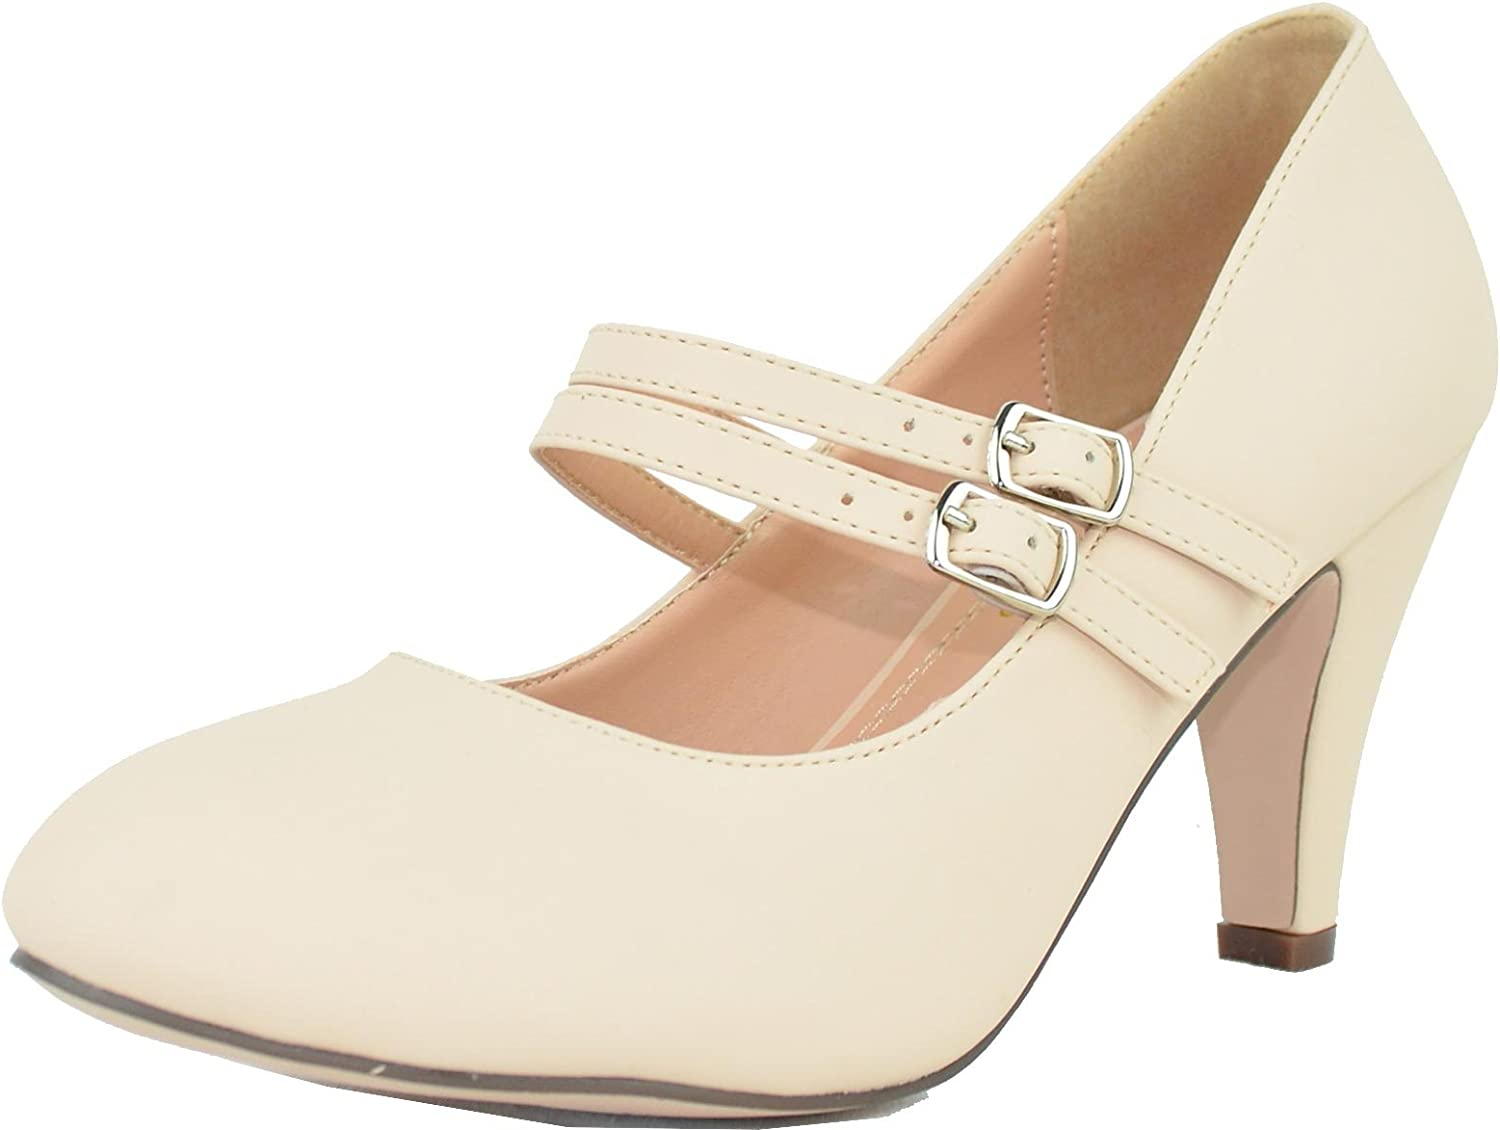 Chase & Chloe Women's Mary Jane Double Strap Buckle Pump